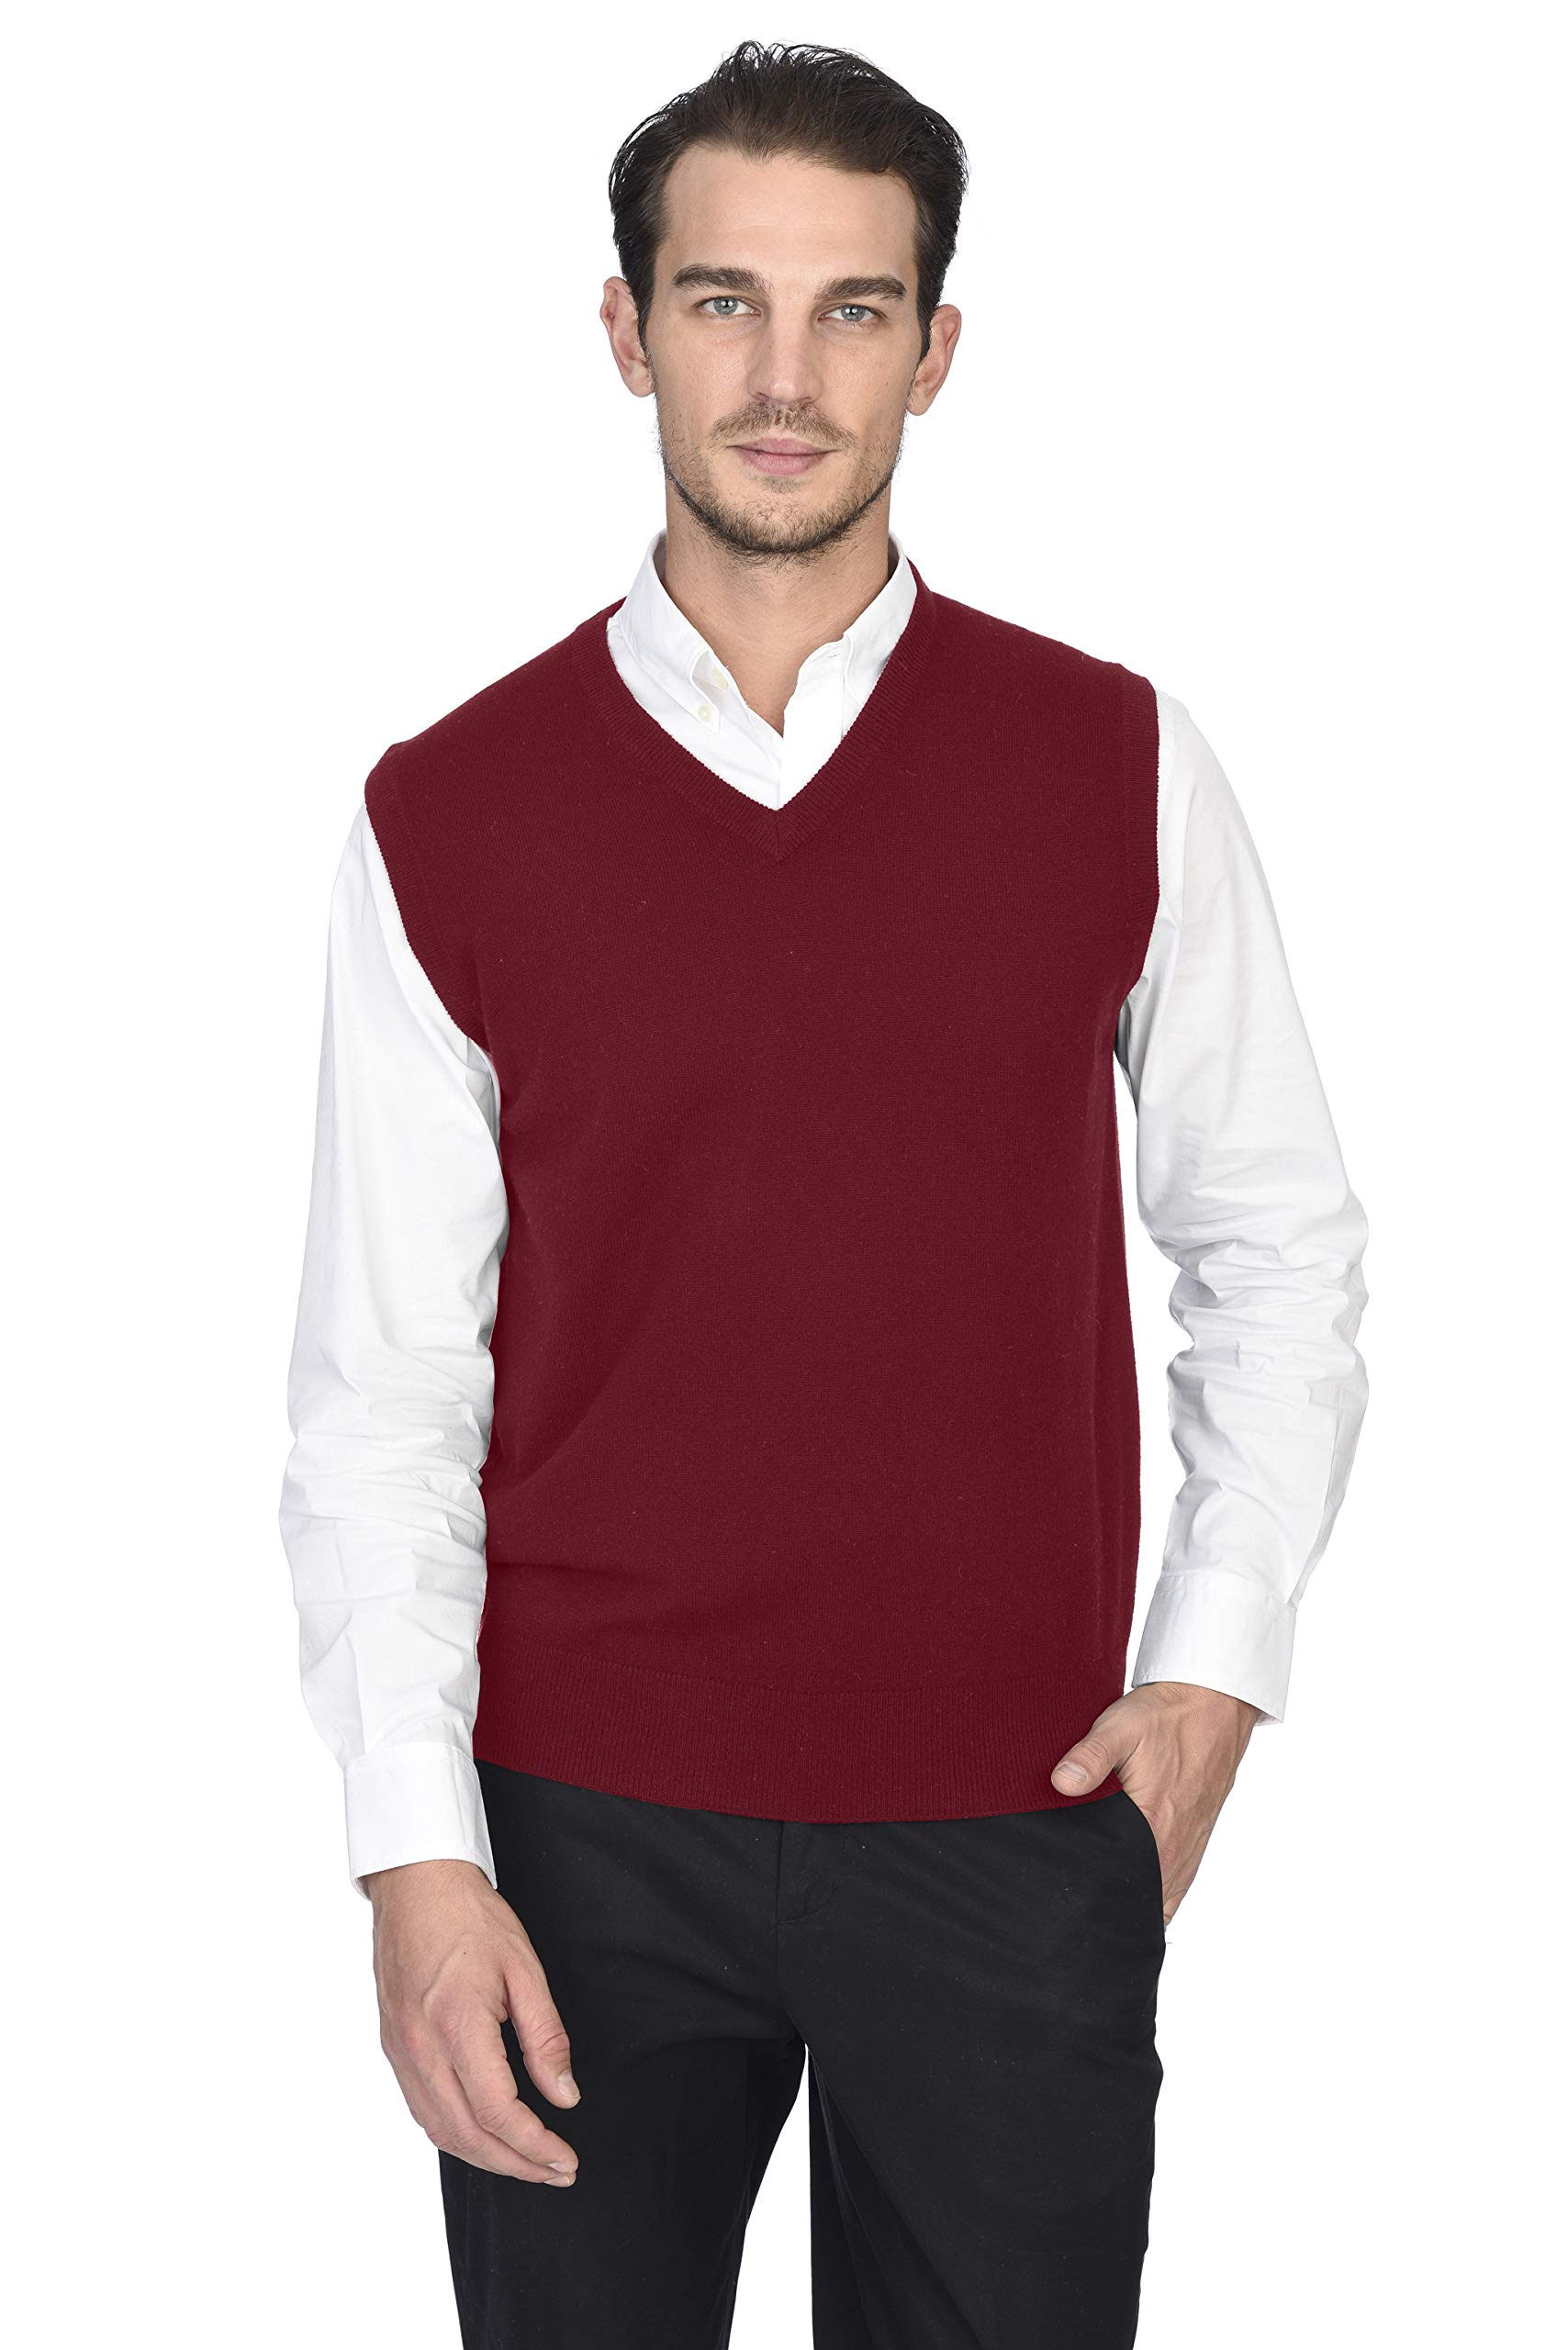 State Cashmere Men's Classic Sleeveless Sweater Vest 100% Pure Cashmere V-Neck Style Pullover (X-Large, Burgundy) by State Cashmere